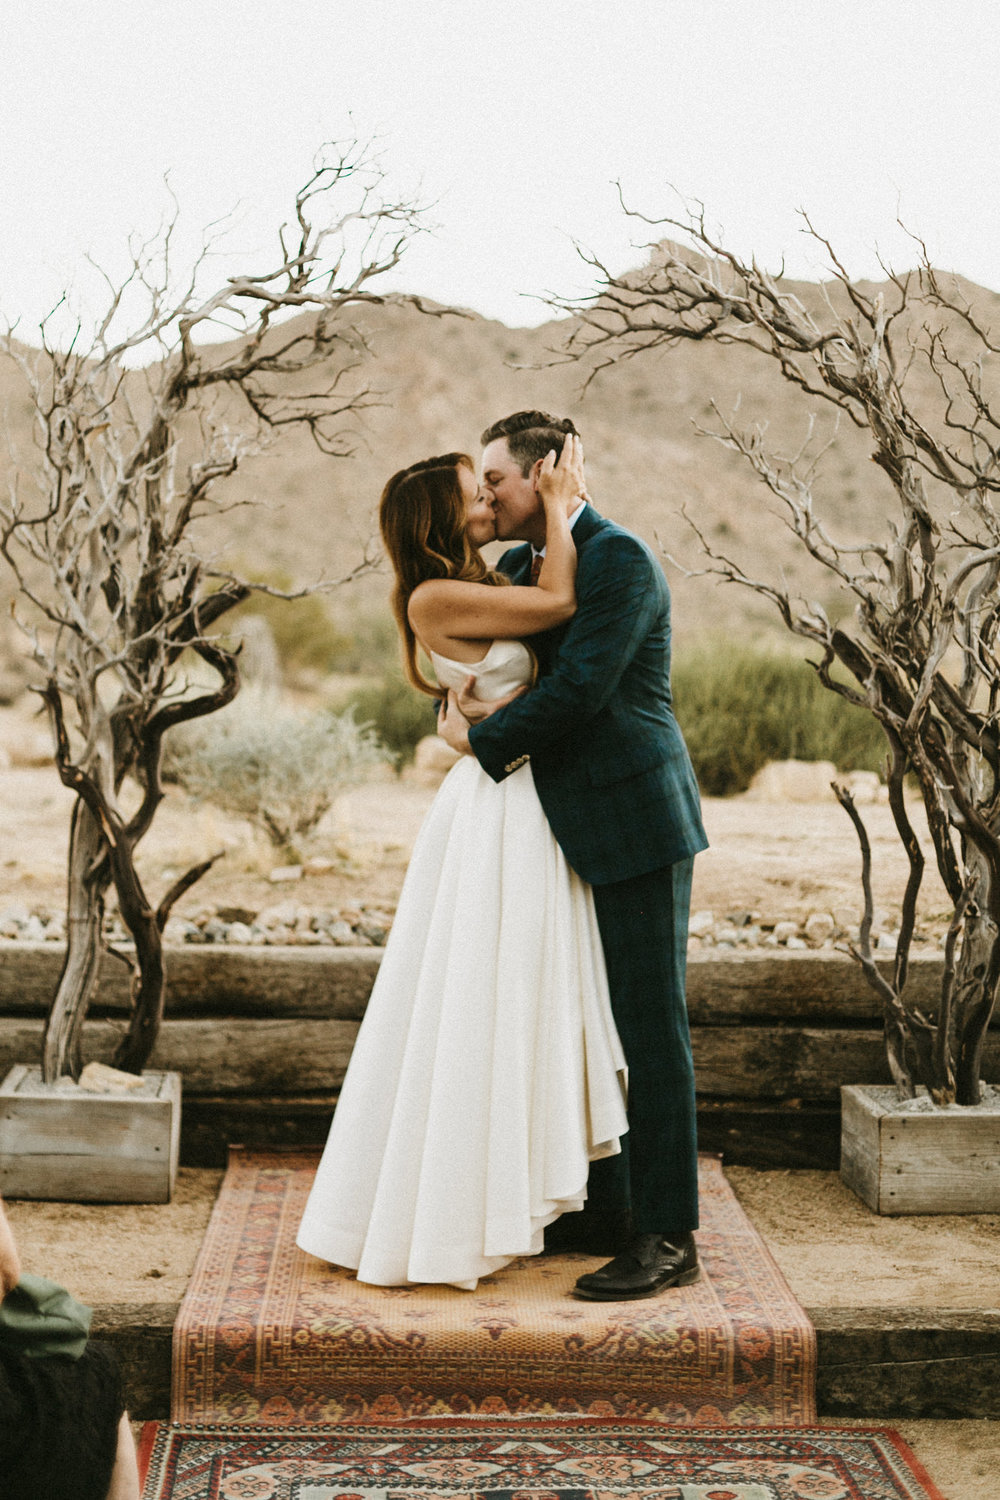 sacred_sands_joshua_tree_wedding-62.jpg